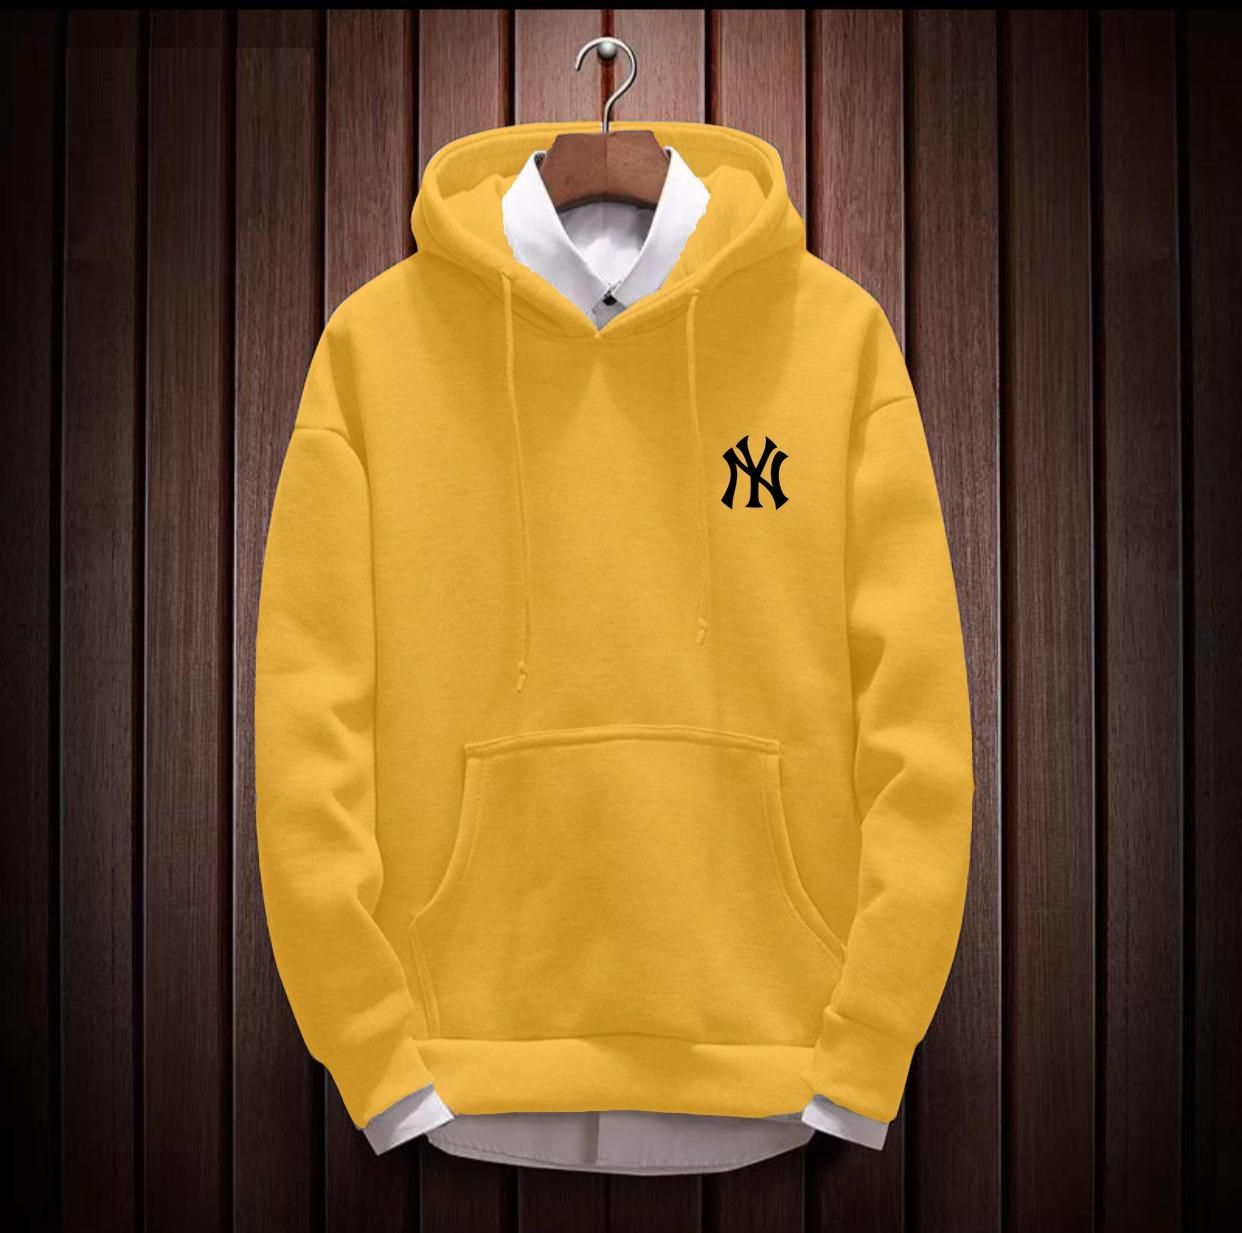 Best and Trending hoodies in India by grabitonce.in available on Chauhan Shop